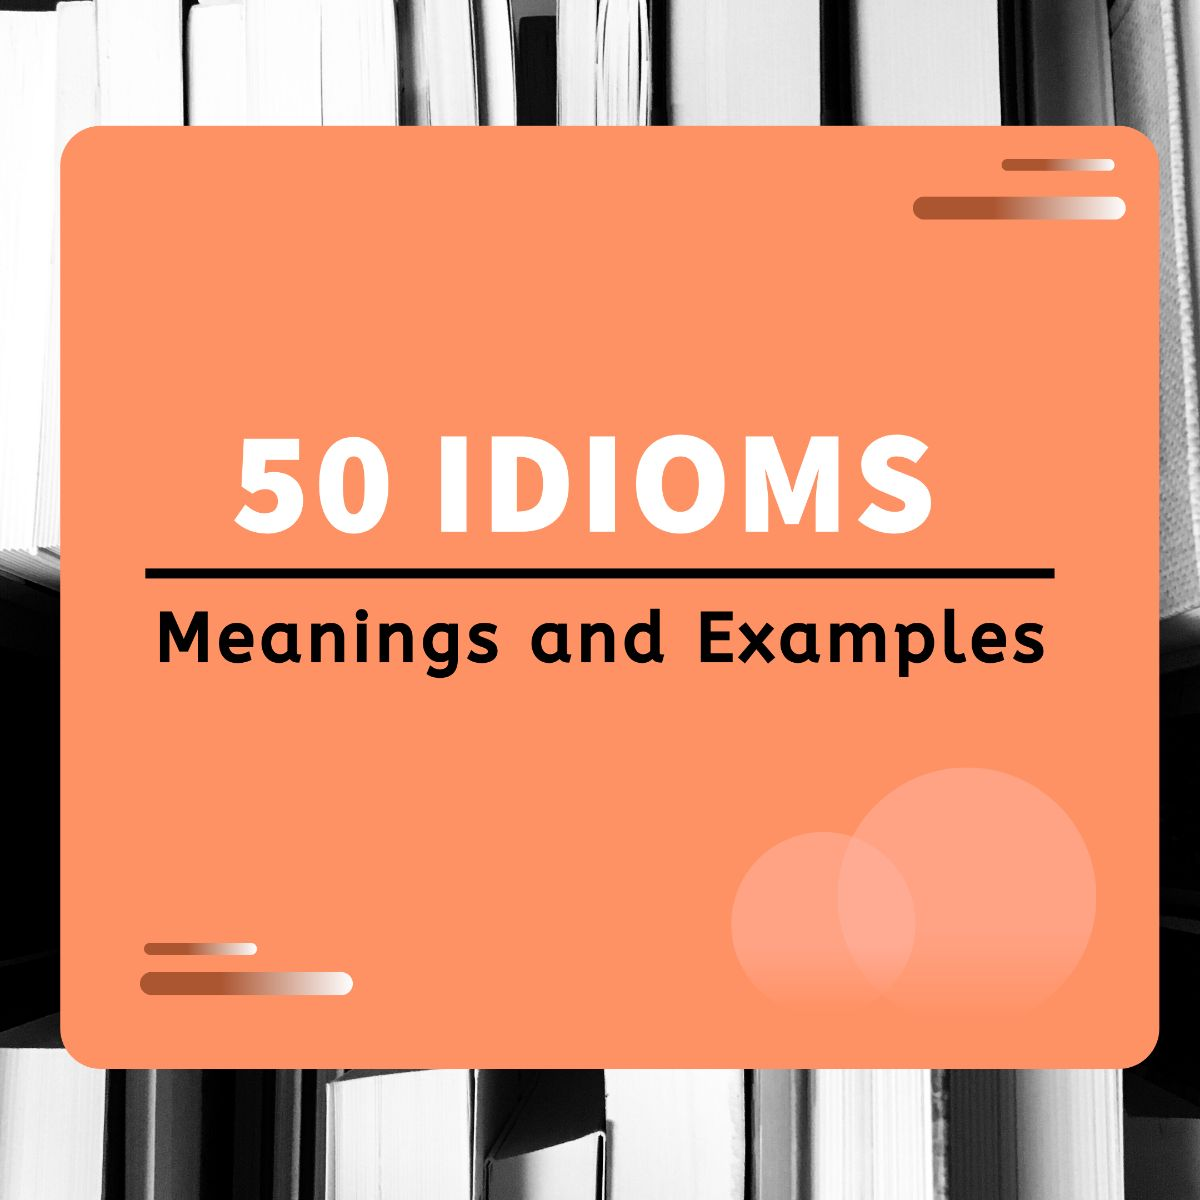 50 idioms and their meanings with Examples